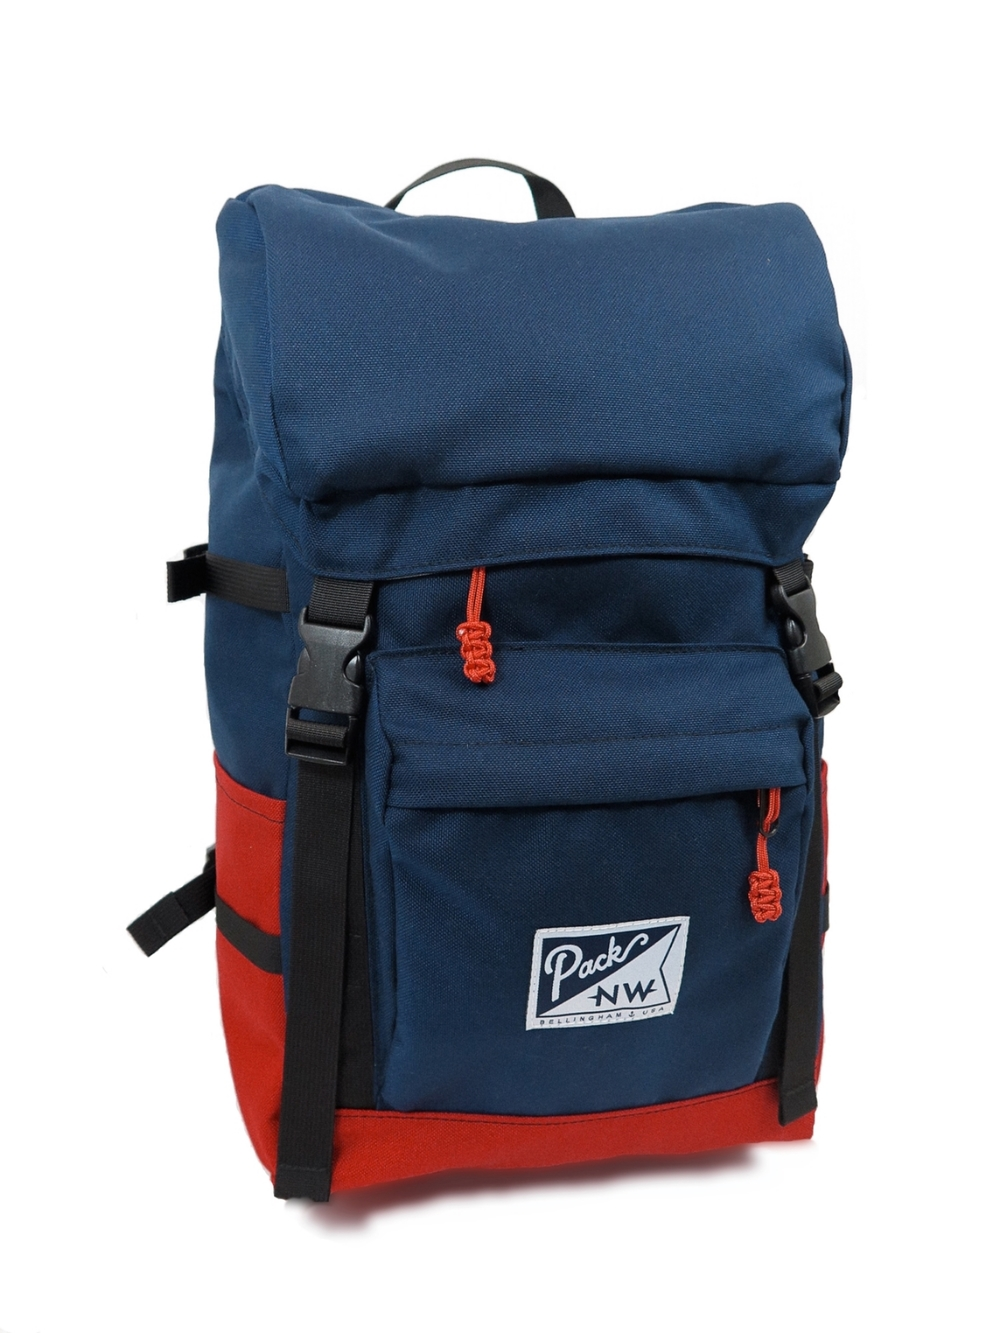 Pack Northwest // Sunbreak   Handmade by sailors, skaters, backcountry enthusiasts, cyclists, climbers, surfers, and kayakers in Bellingham, WA. This little adventure buddy has all the pockets you need in sturdy rain-resistant perfection.  $175 //  packnw.com  //Made in Washington